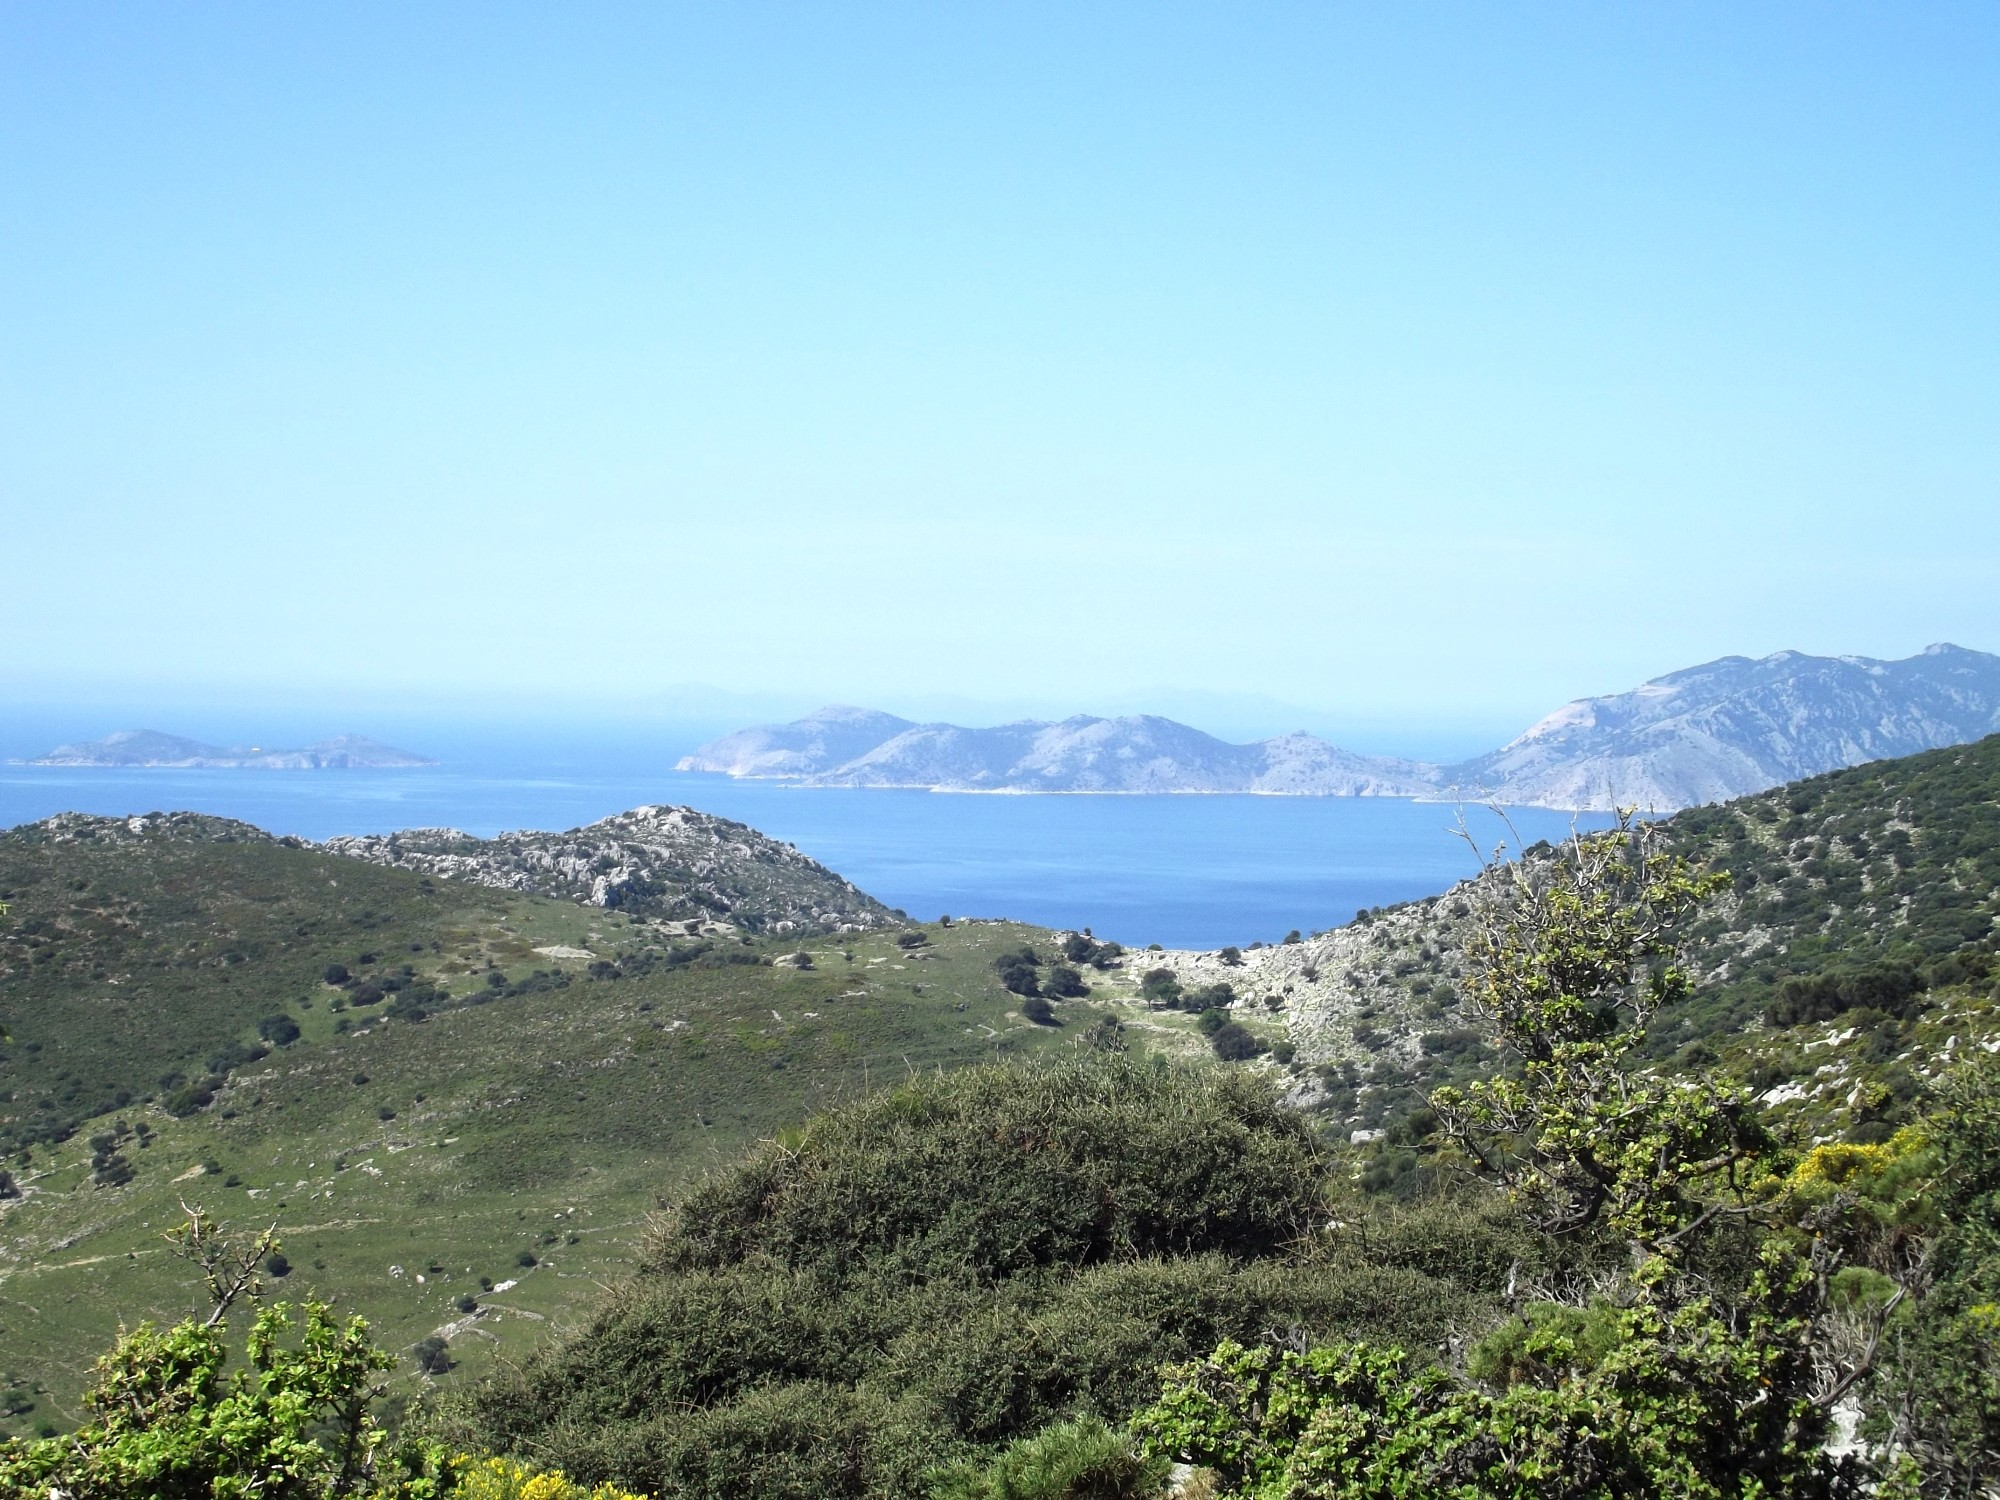 Fig. 15. View from Asar Dağ across the environment with the island of Symi in the background